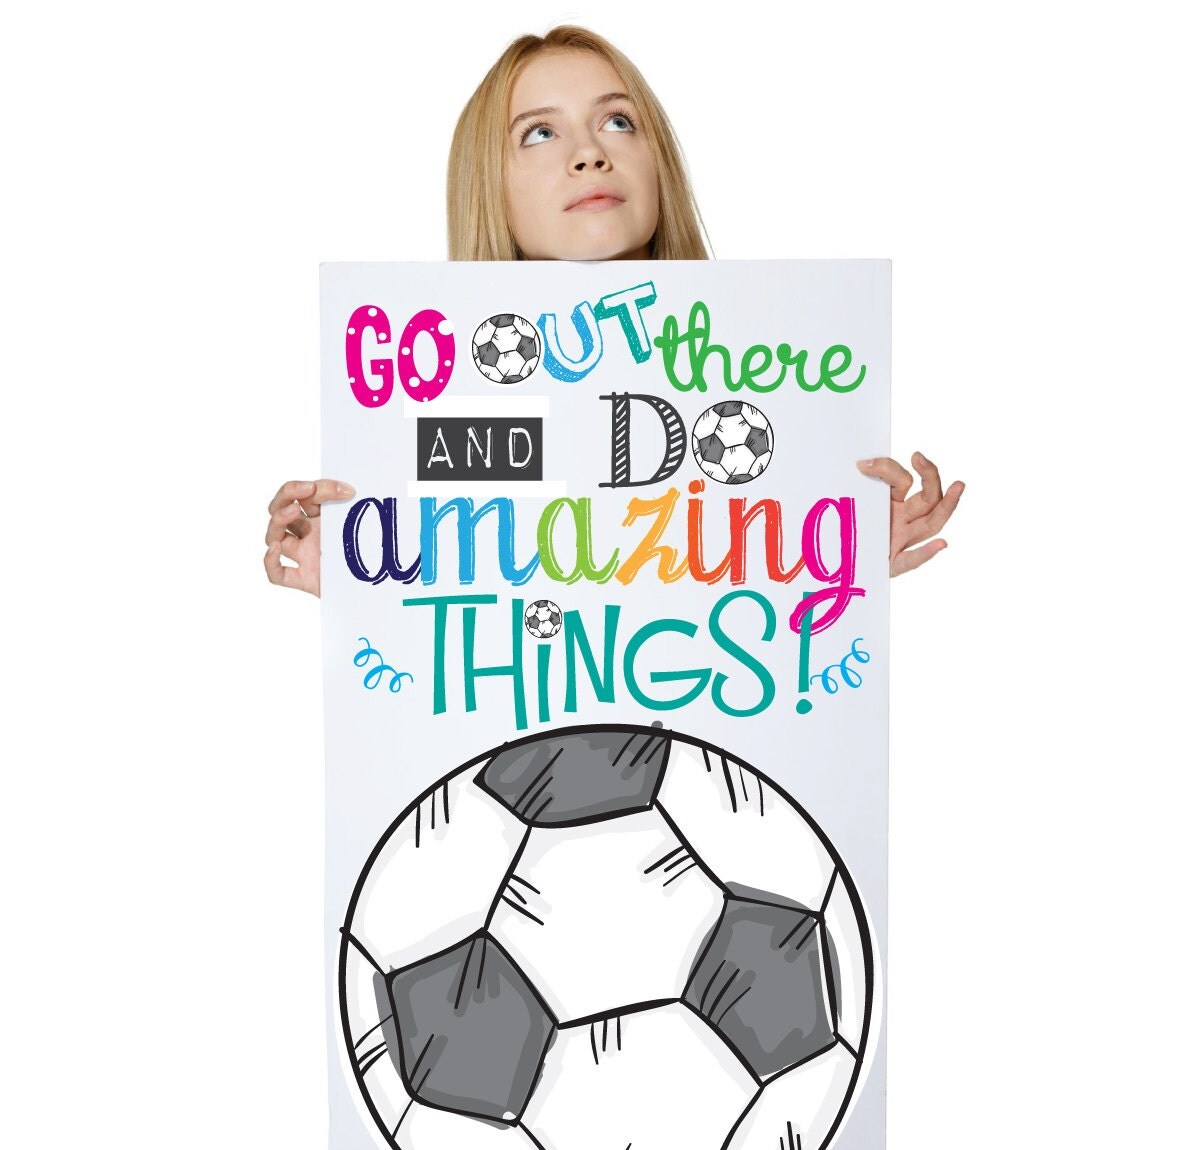 Do Amazing Things: Go Out There And Do Amazing Things. Soccer Motivational Quote